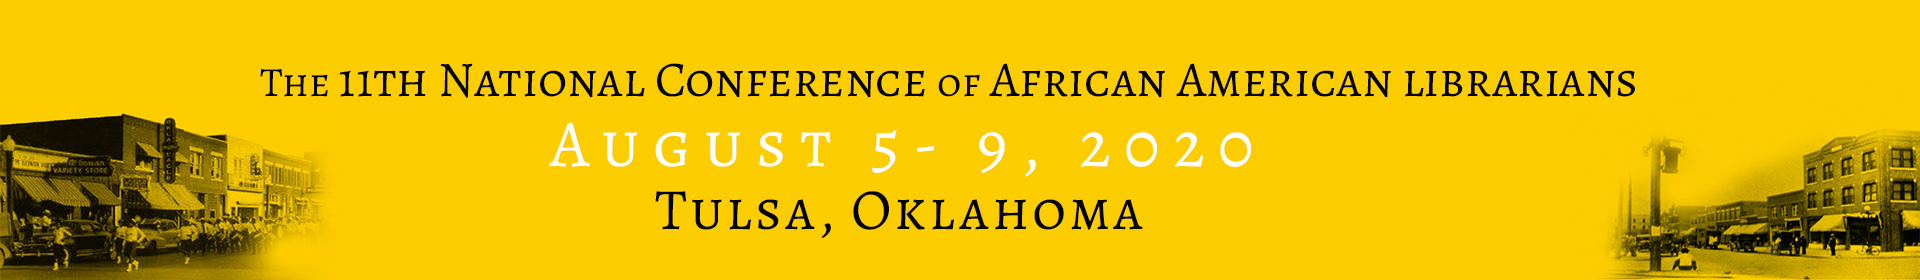 National Conference of African American Librarians XI  Event Banner